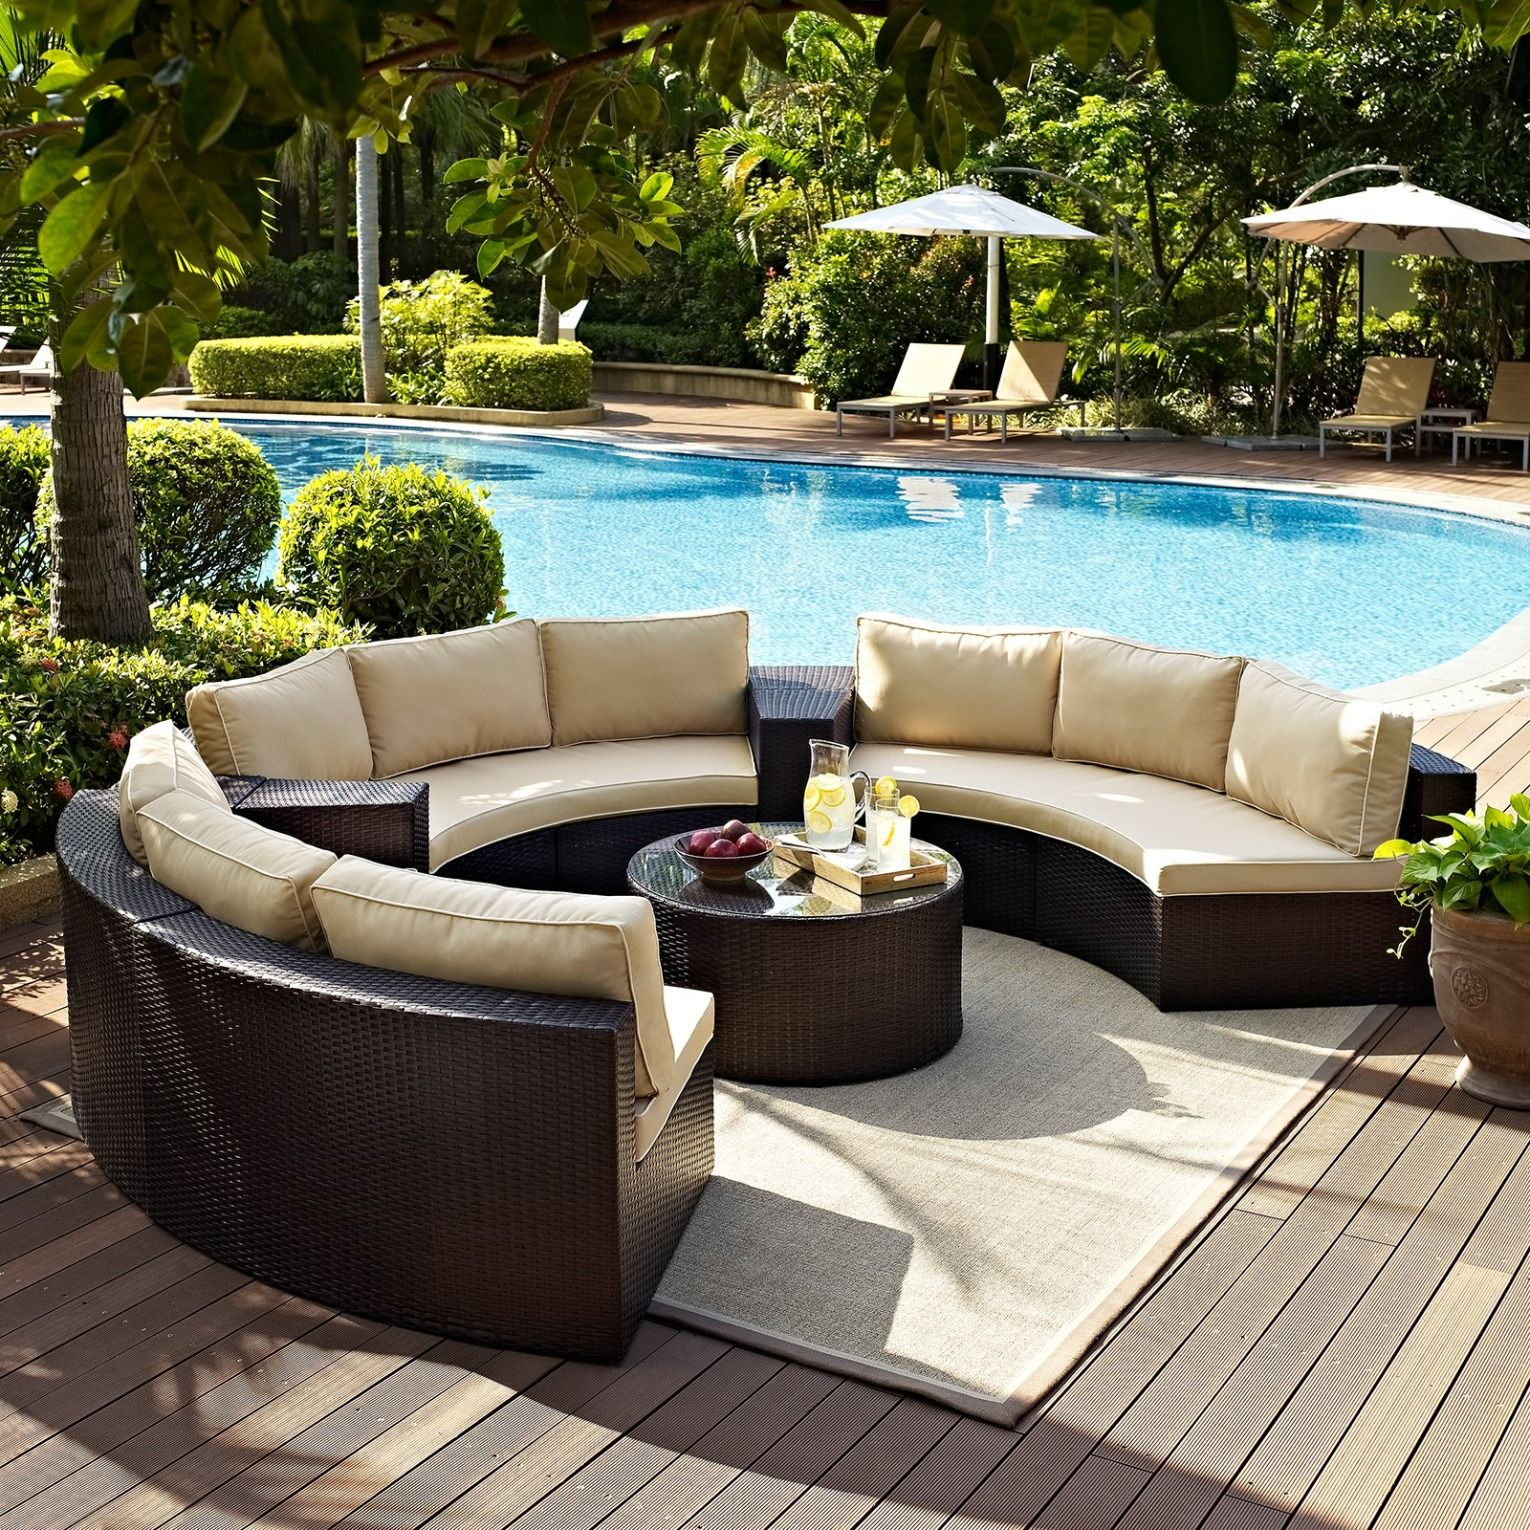 Turn your patio into paradise